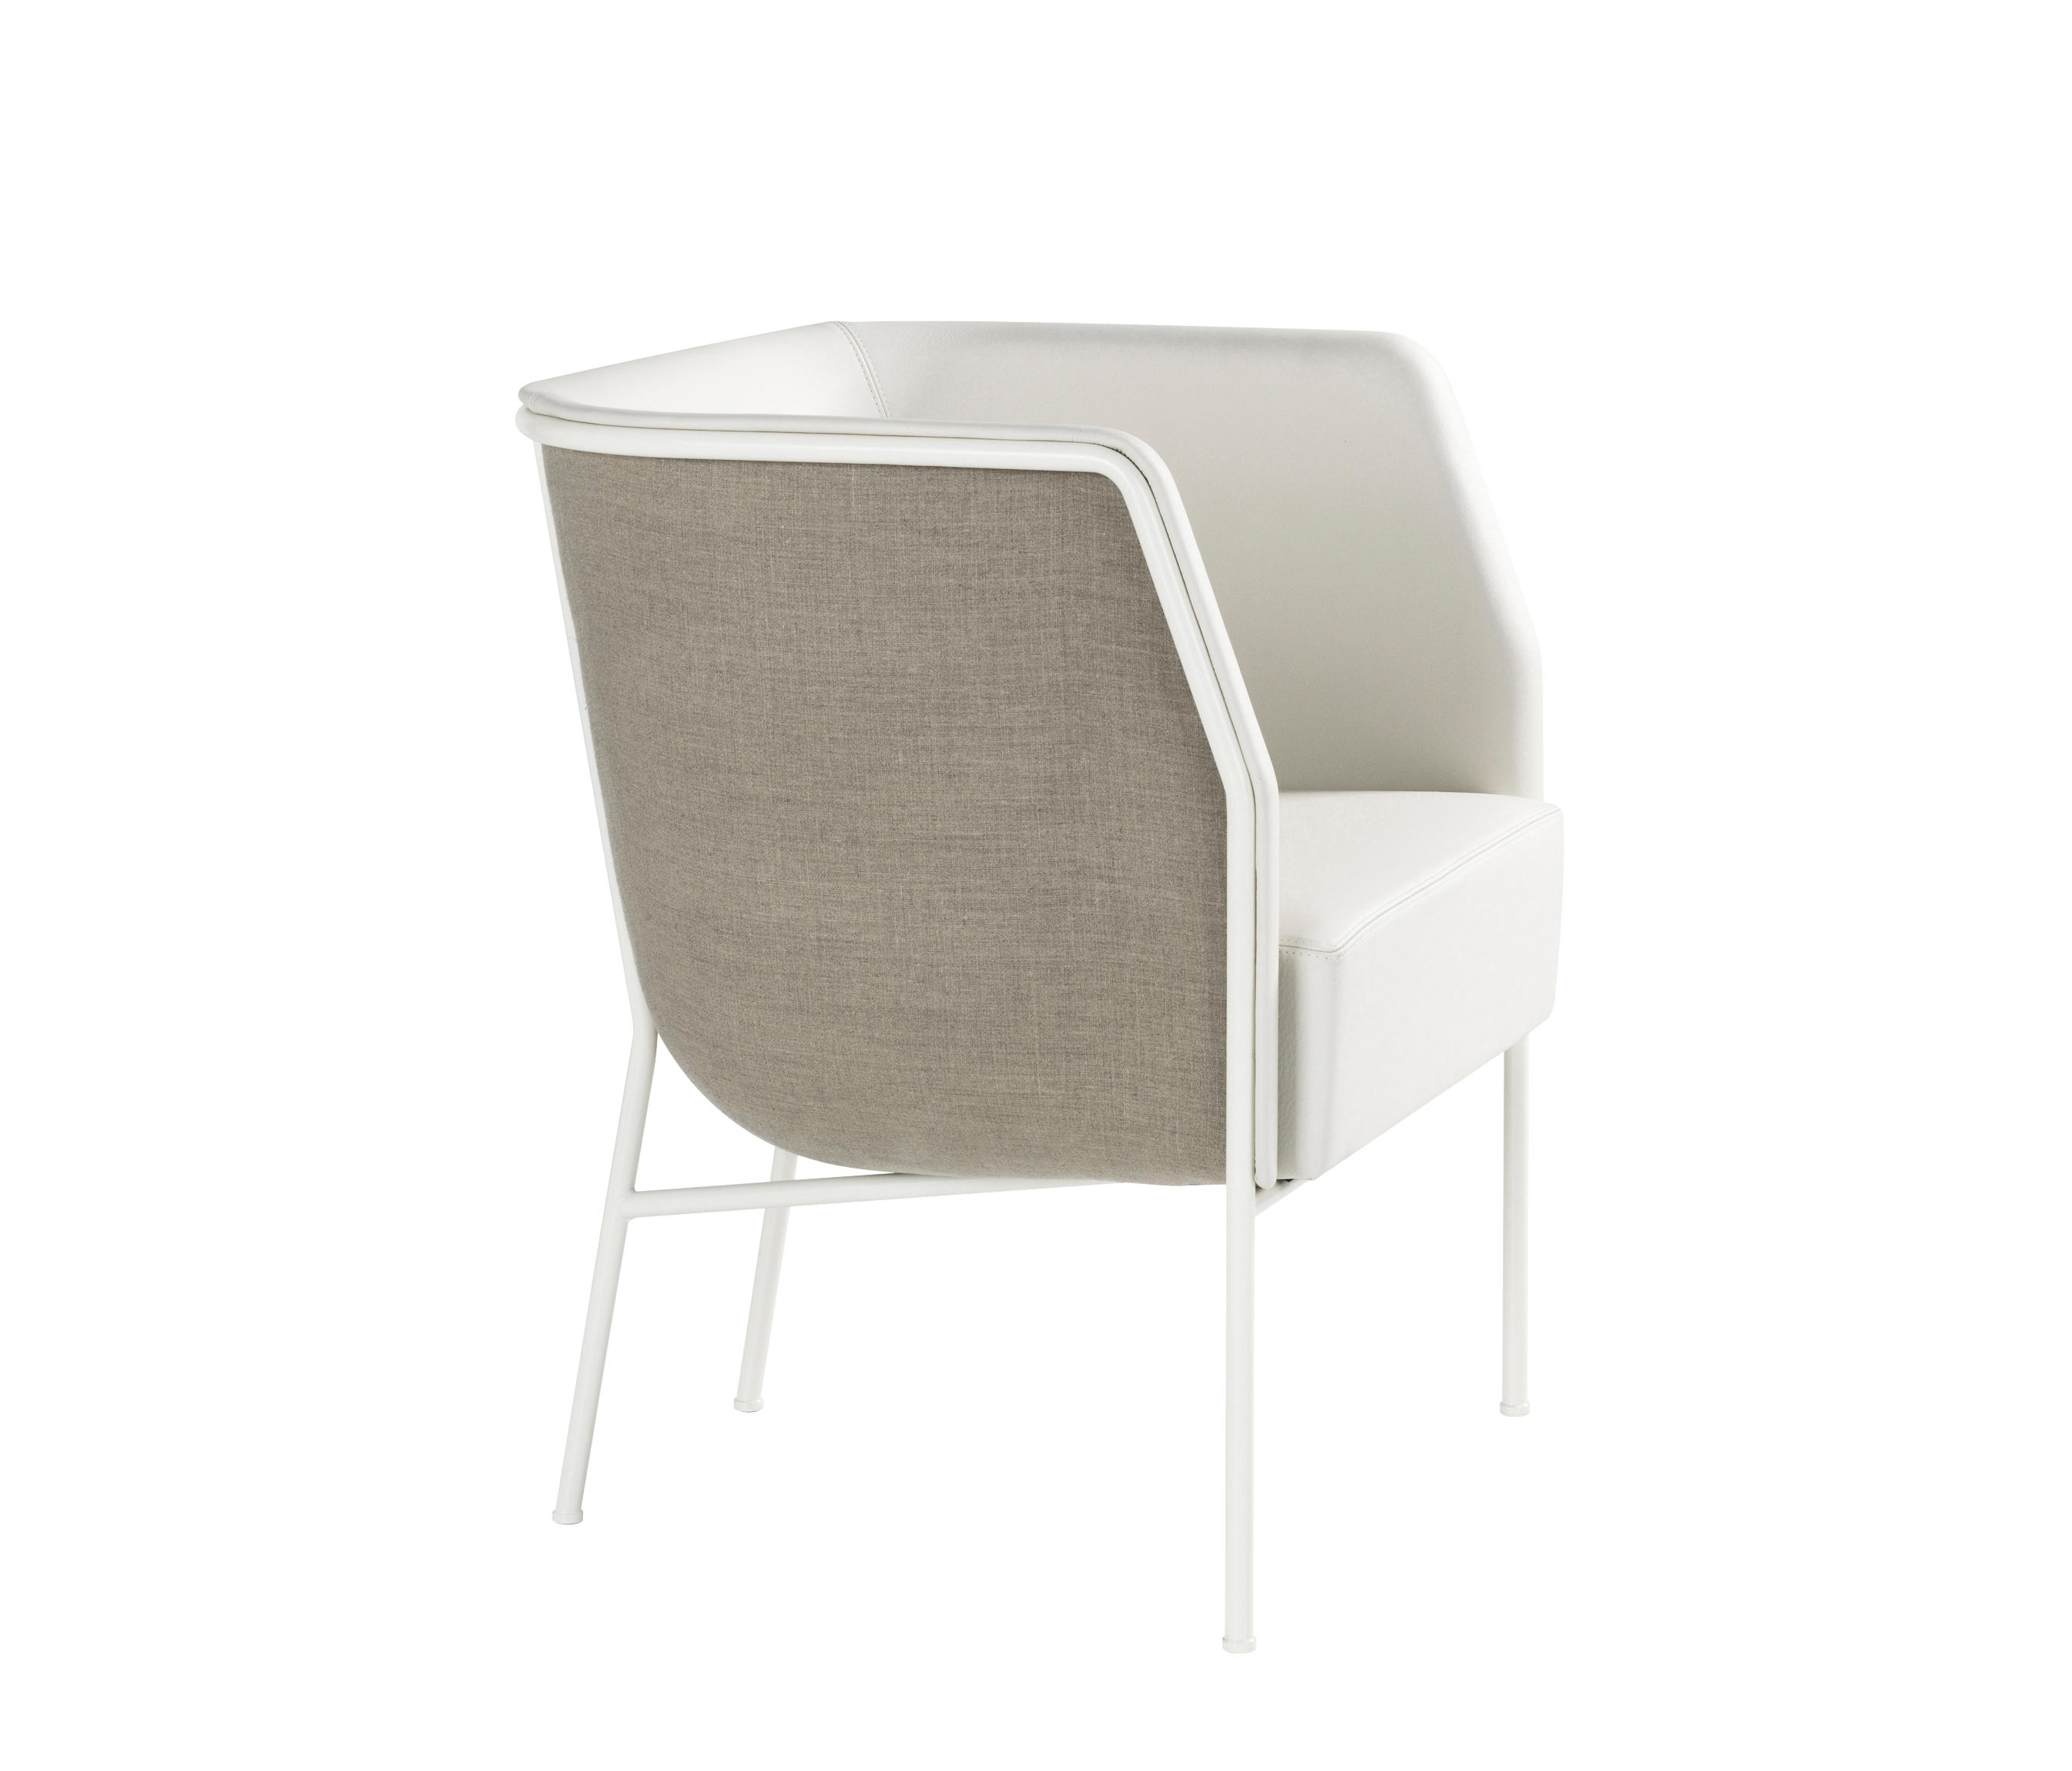 Sessel gezeichnet  CAJAL | SESSEL - Loungesessel von Lammhults | Architonic